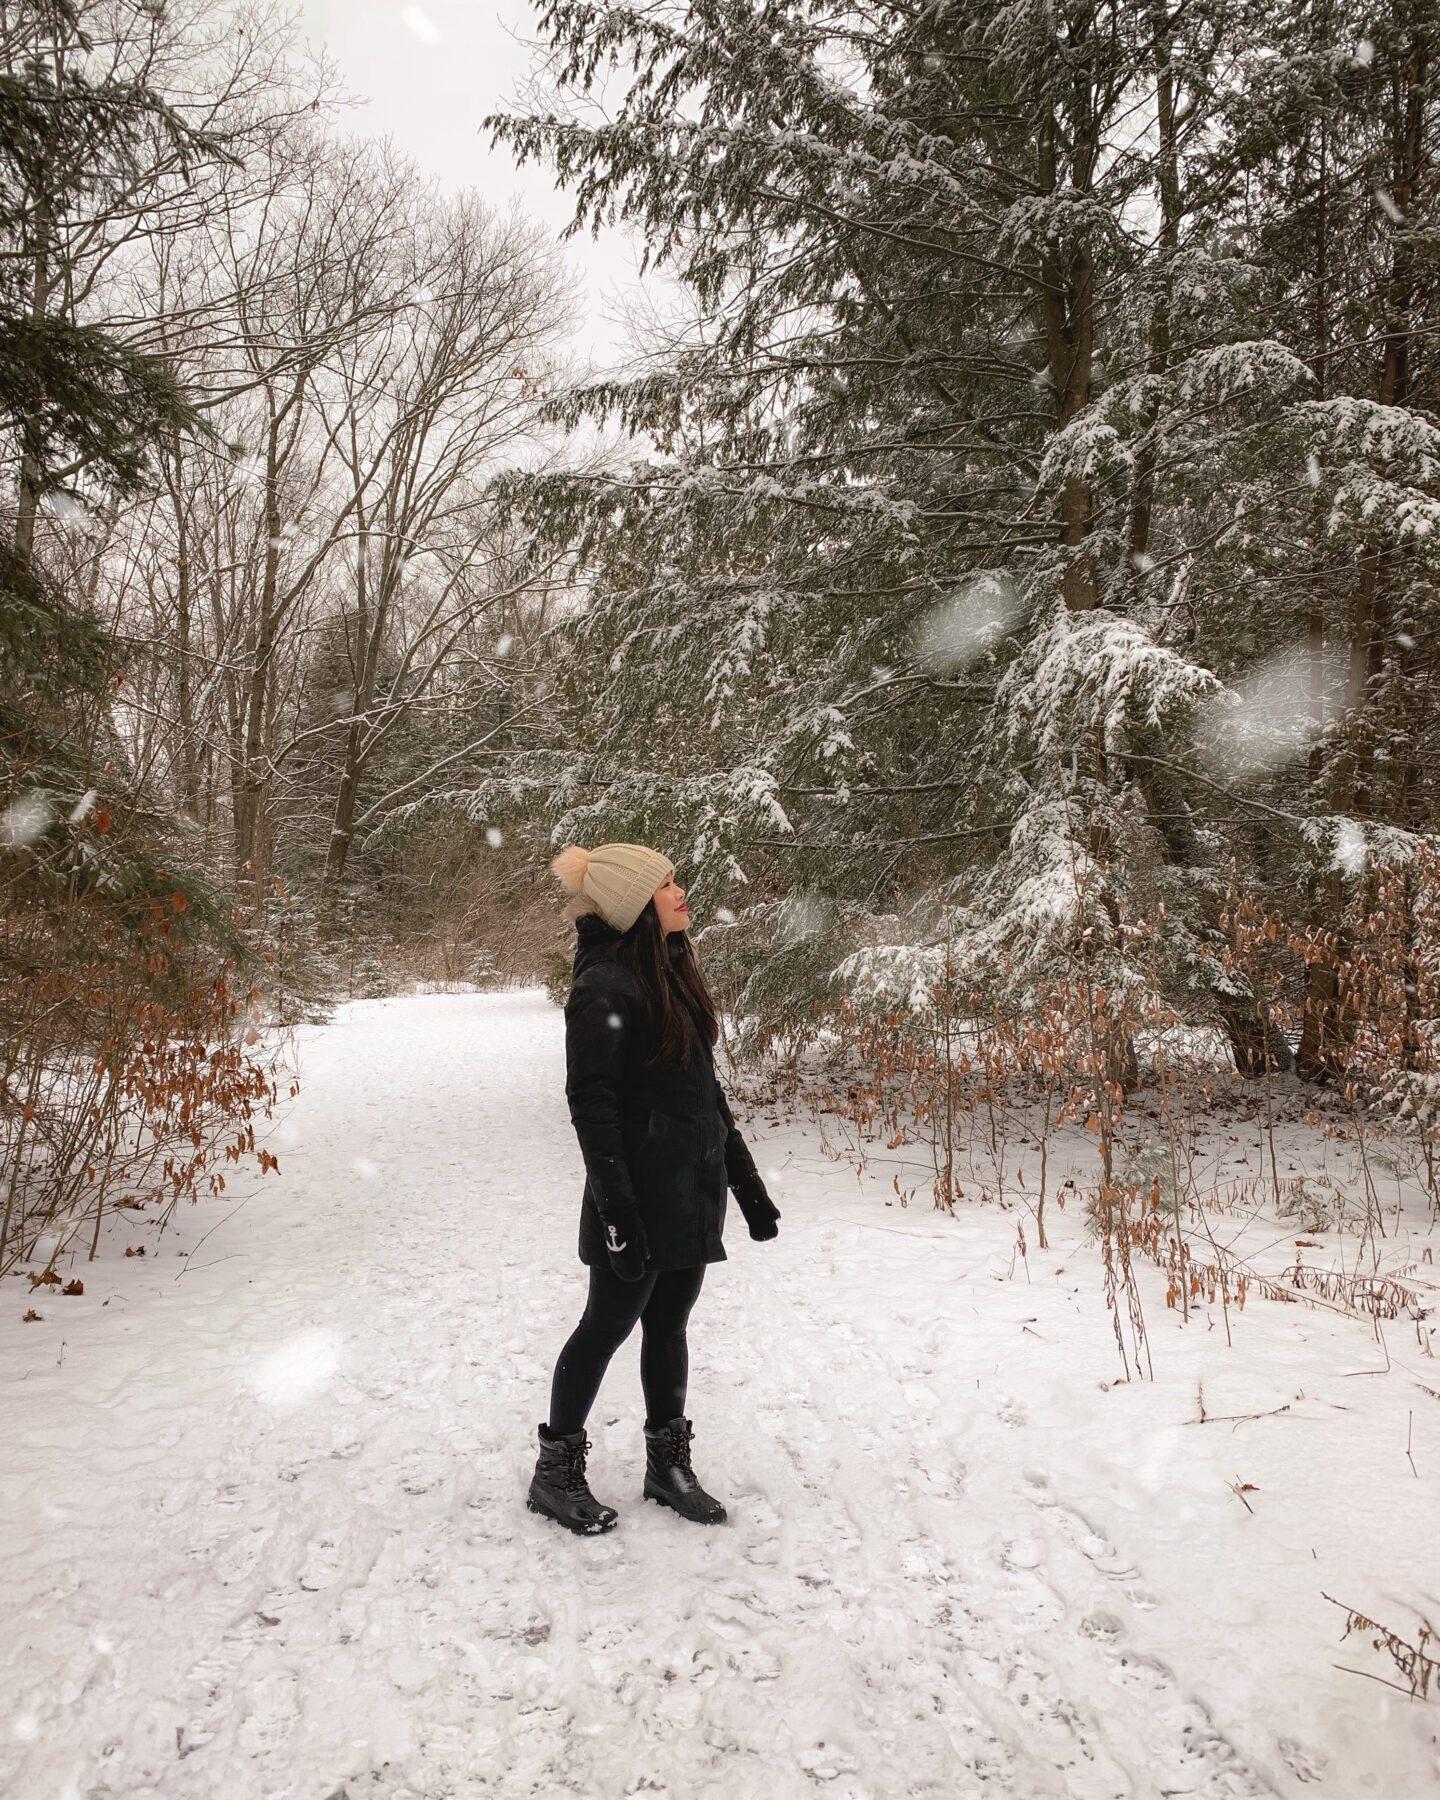 Hiking in Heber Down Conservation Area, Bowmanville, Ontario